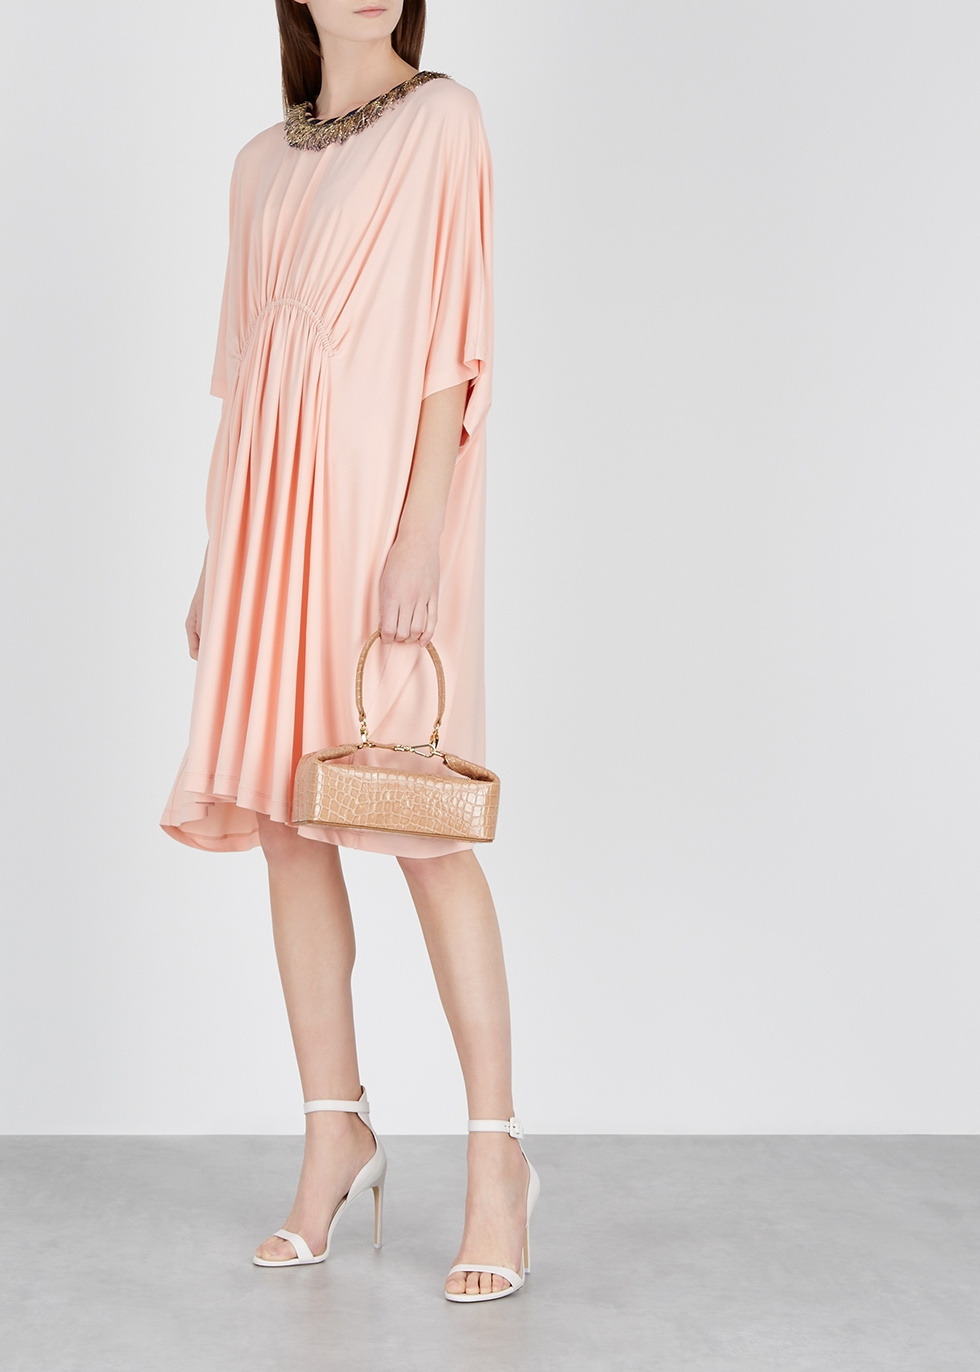 Light pink stretch-jersey dress - M Missoni